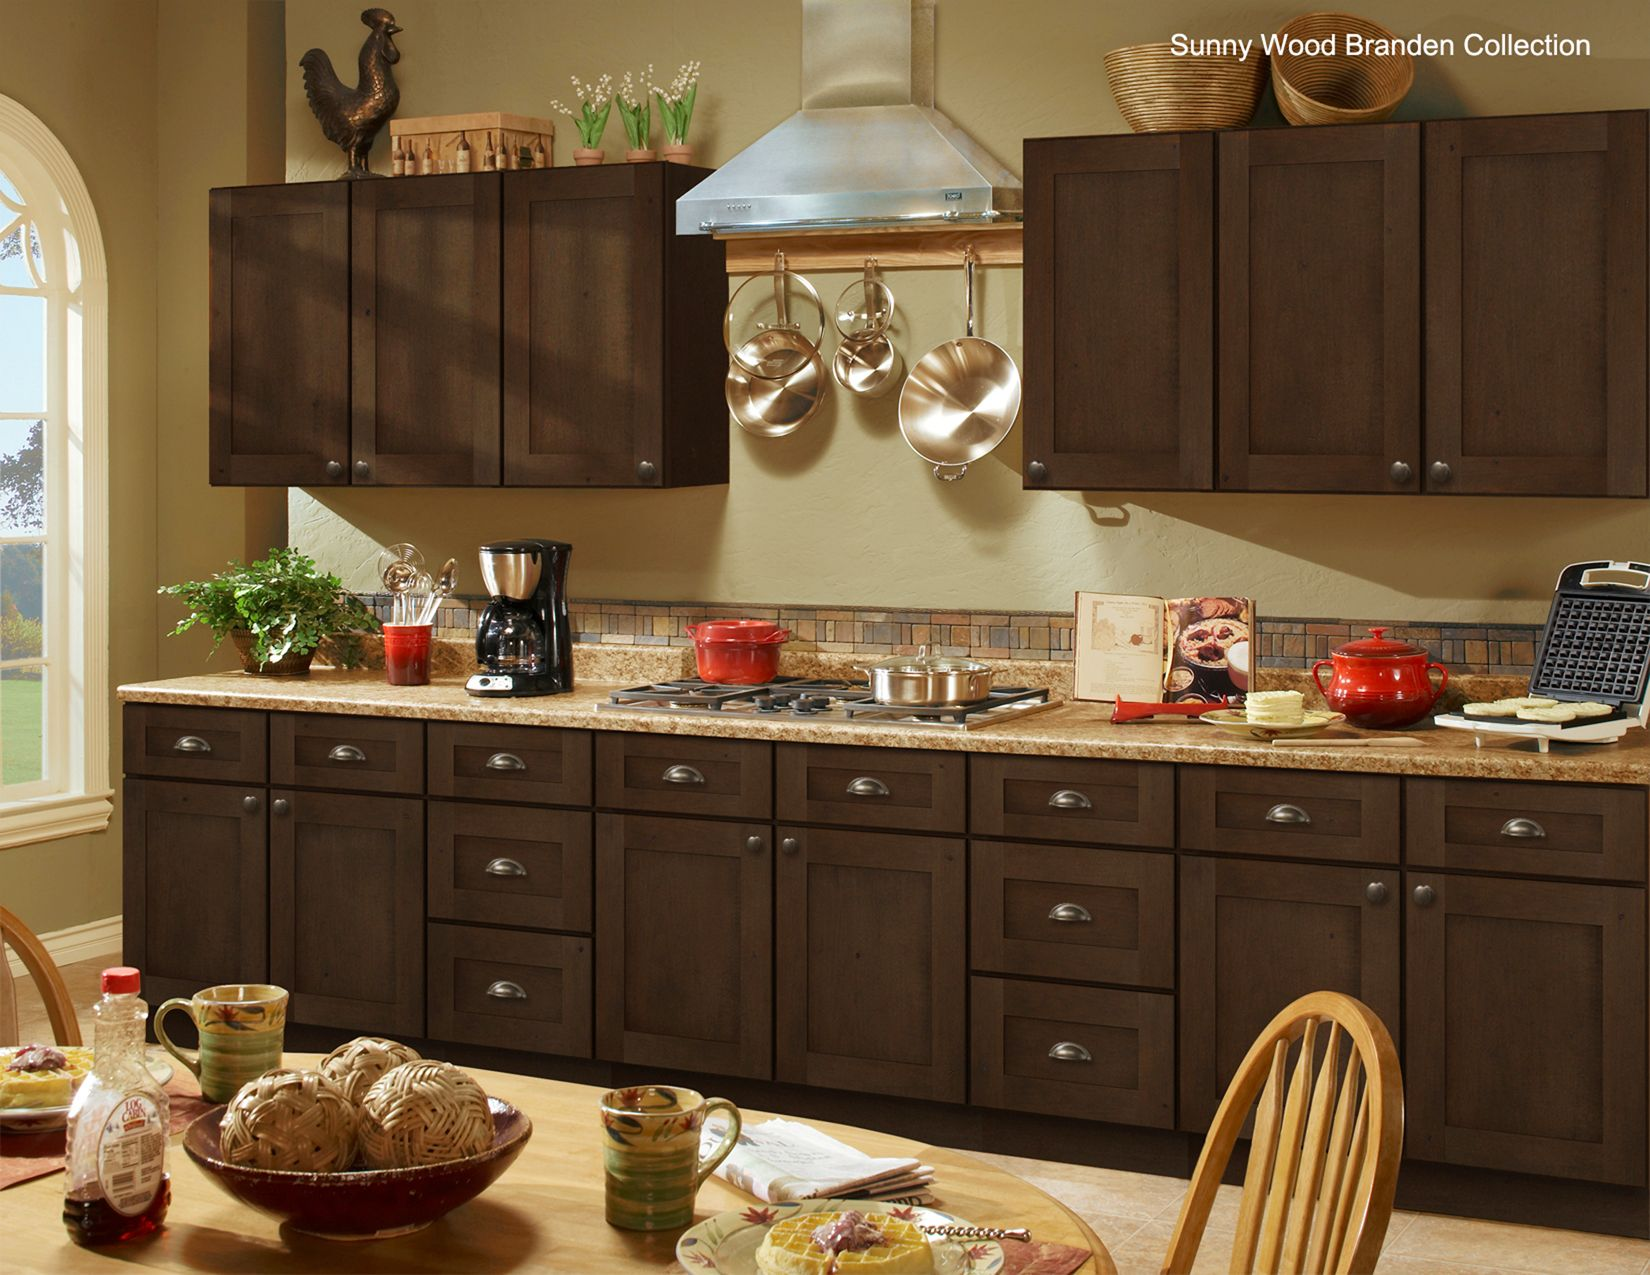 sunnywood kitchen cabinets tsg forevermark cabinets vintage estate kitchen cabinets by sunnywood youtube